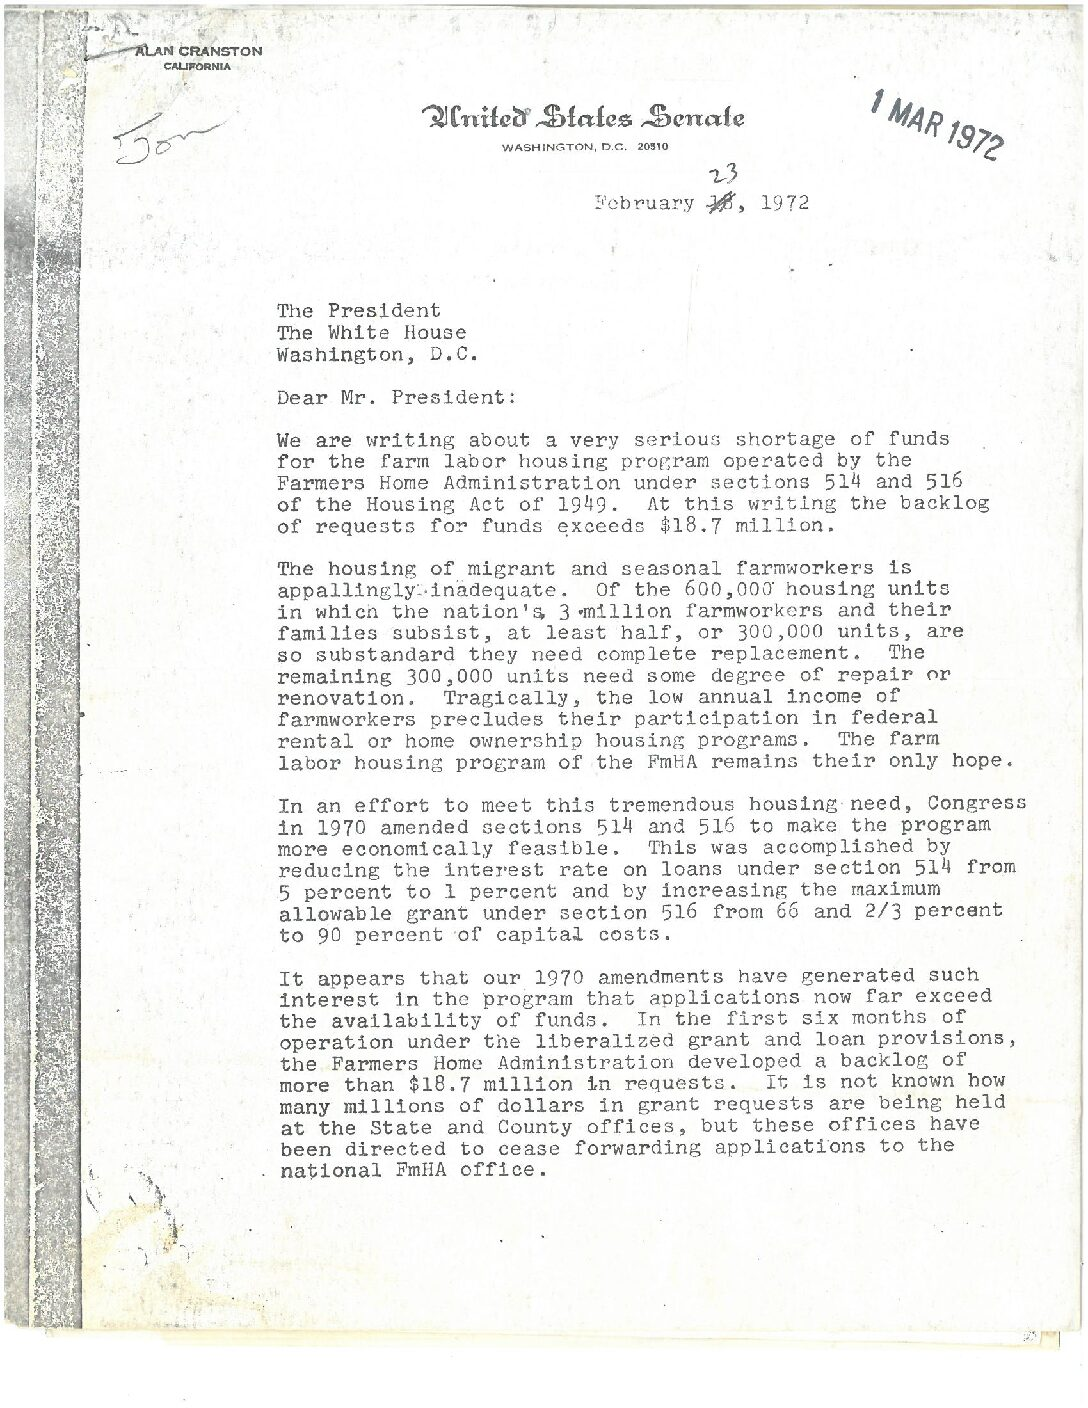 Letter to Nixon From Senators on Farmworker Housing Shortage